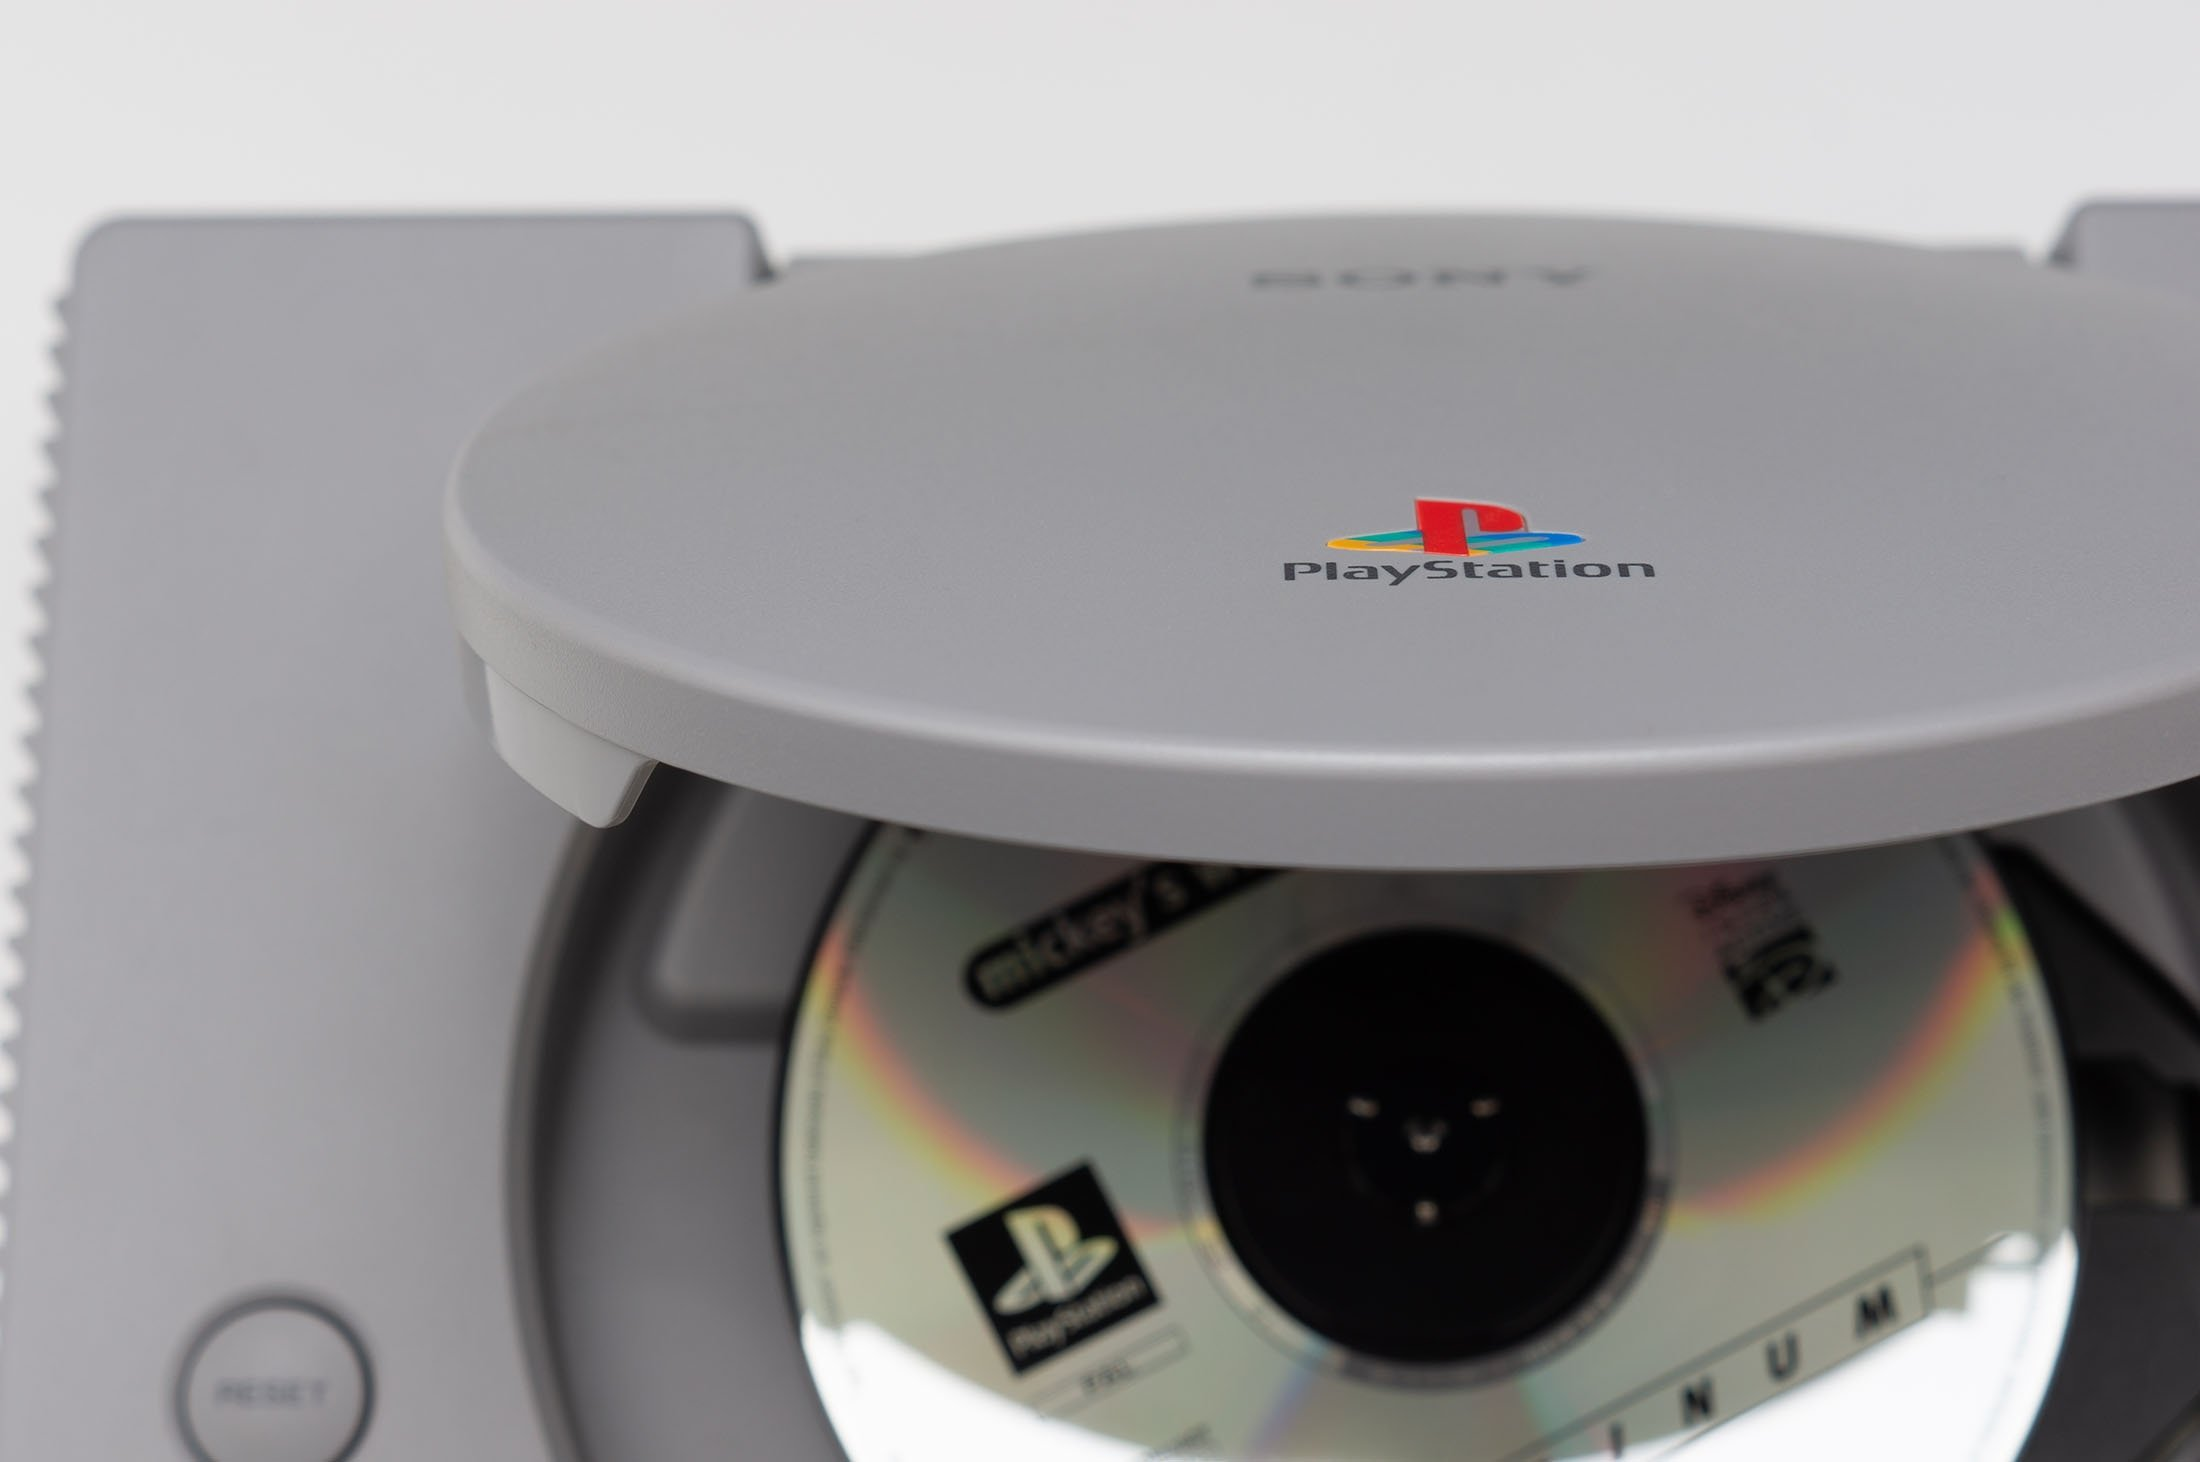 A game disk sits in Sony's original PlayStation console in Melbourne, Australia, July 23, 2018. (Shutterstock Photo)